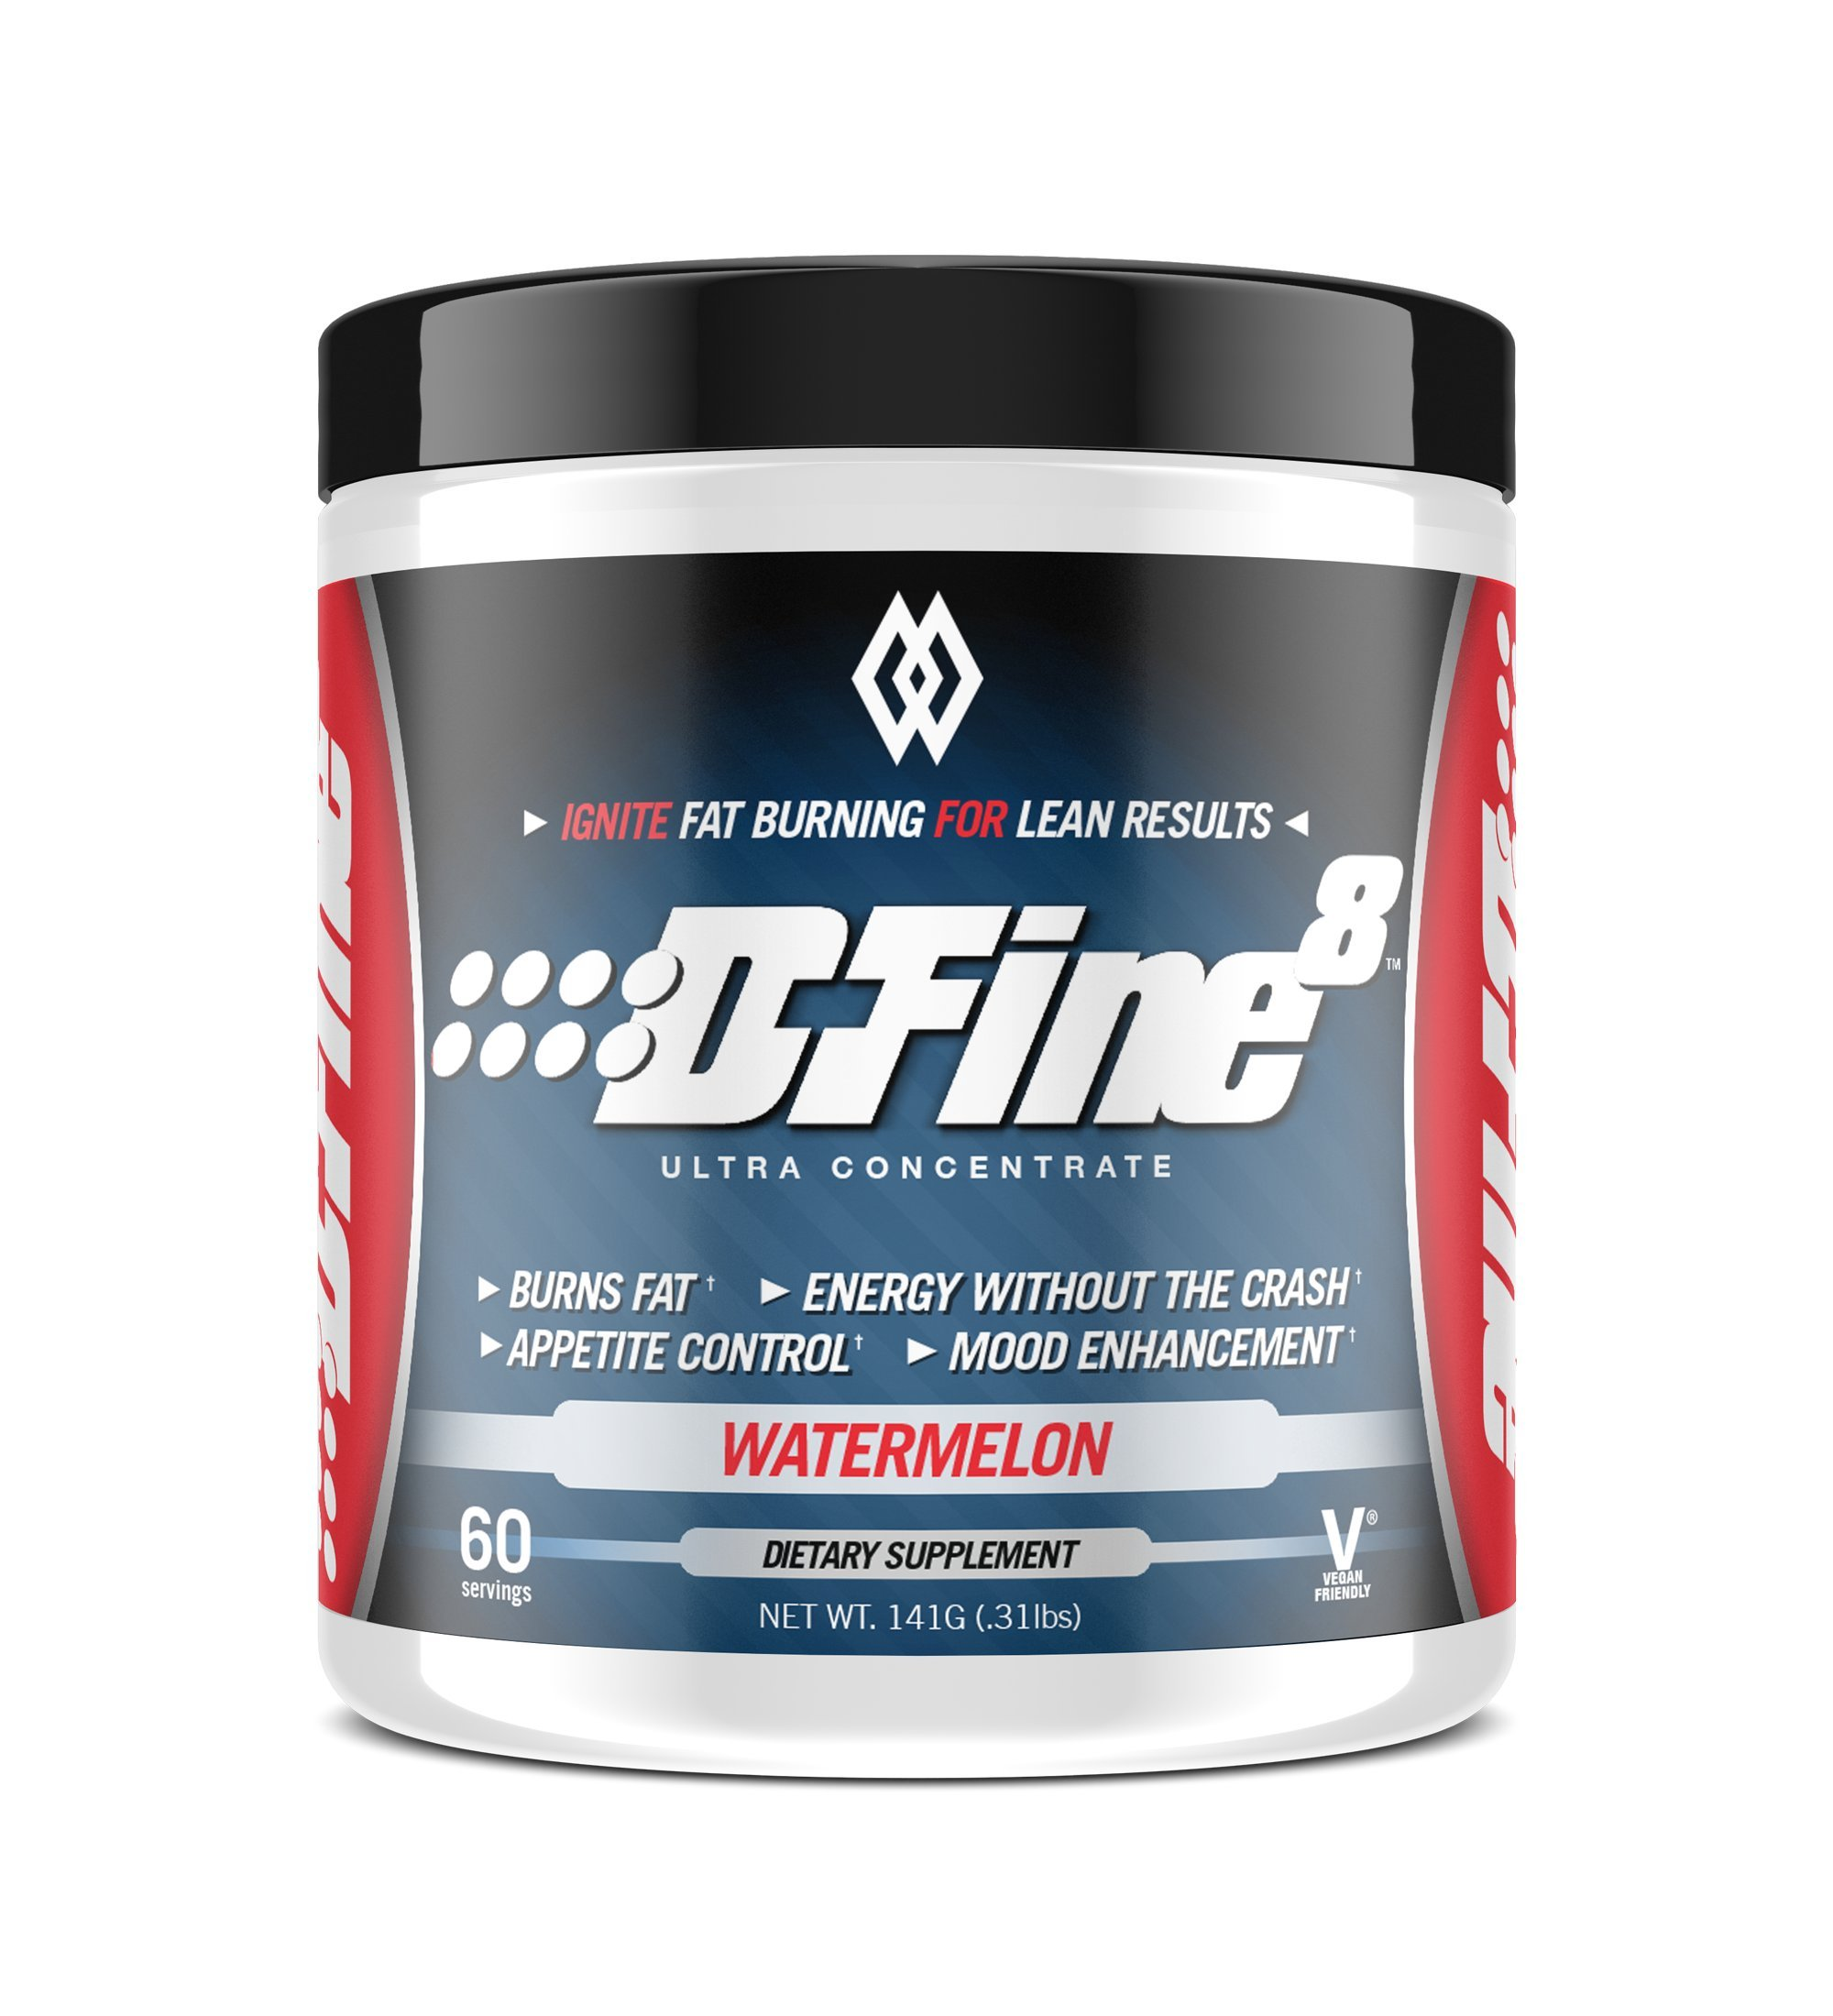 Musclewerks D-Fine8 - Fat Burner Thermogenic, Pre Workout Powder, Appetite Suppressant, Energy & Weight Loss Supplement for Men & Women - 60 Servings Vegan Friendly (Watermelon) by Musclewerks